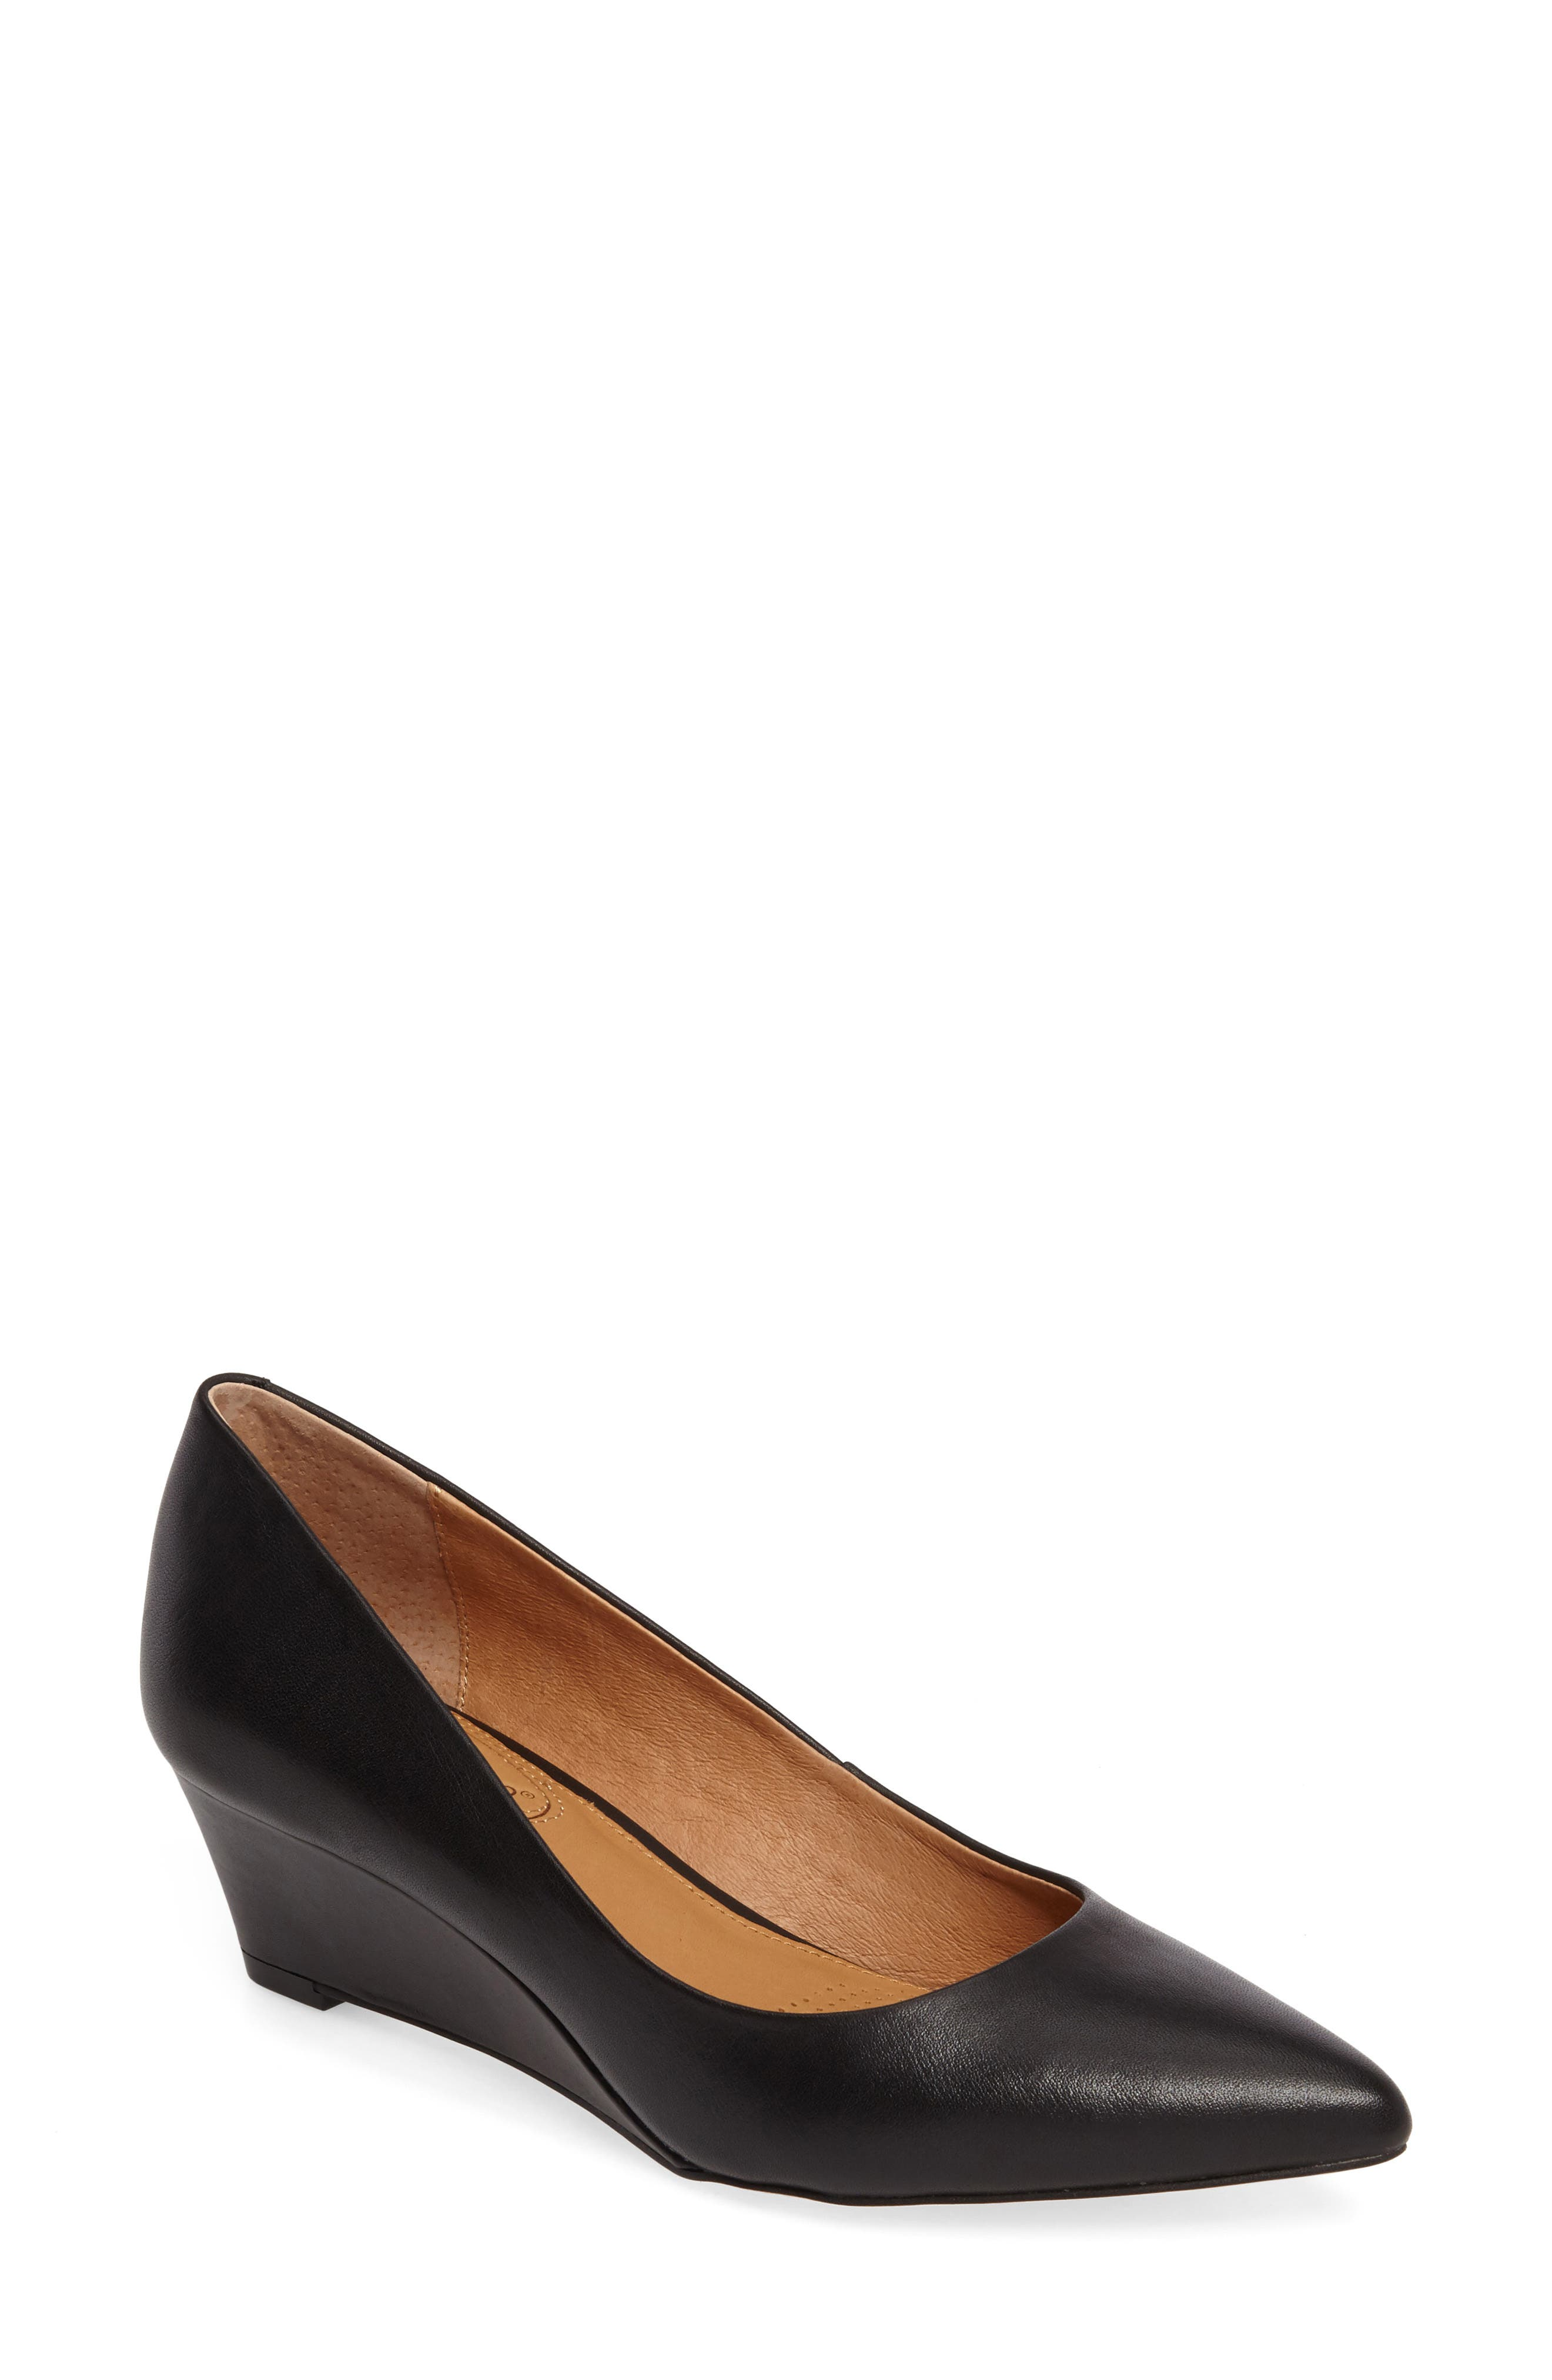 Nelly Pointy Toe Wedge Pump,                             Main thumbnail 1, color,                             Black Leather